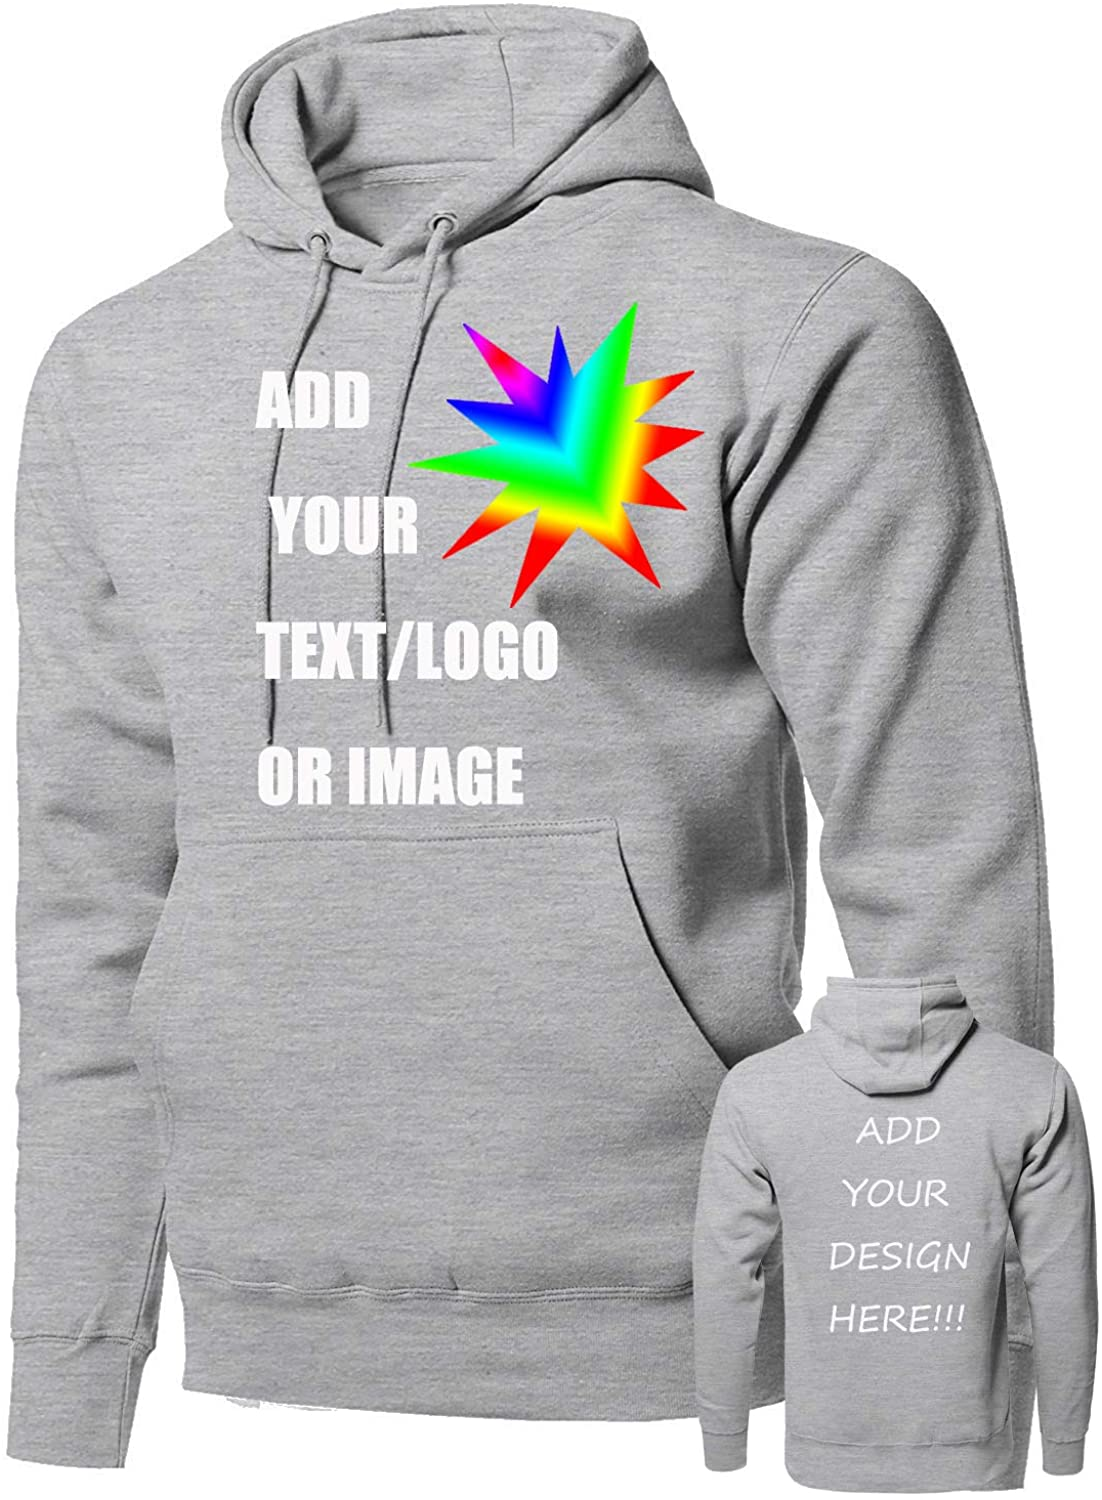 Custom Personalized Men Pullover Sweatshirt Hoodie-Double Design-Add Anything(Black/Large Size)